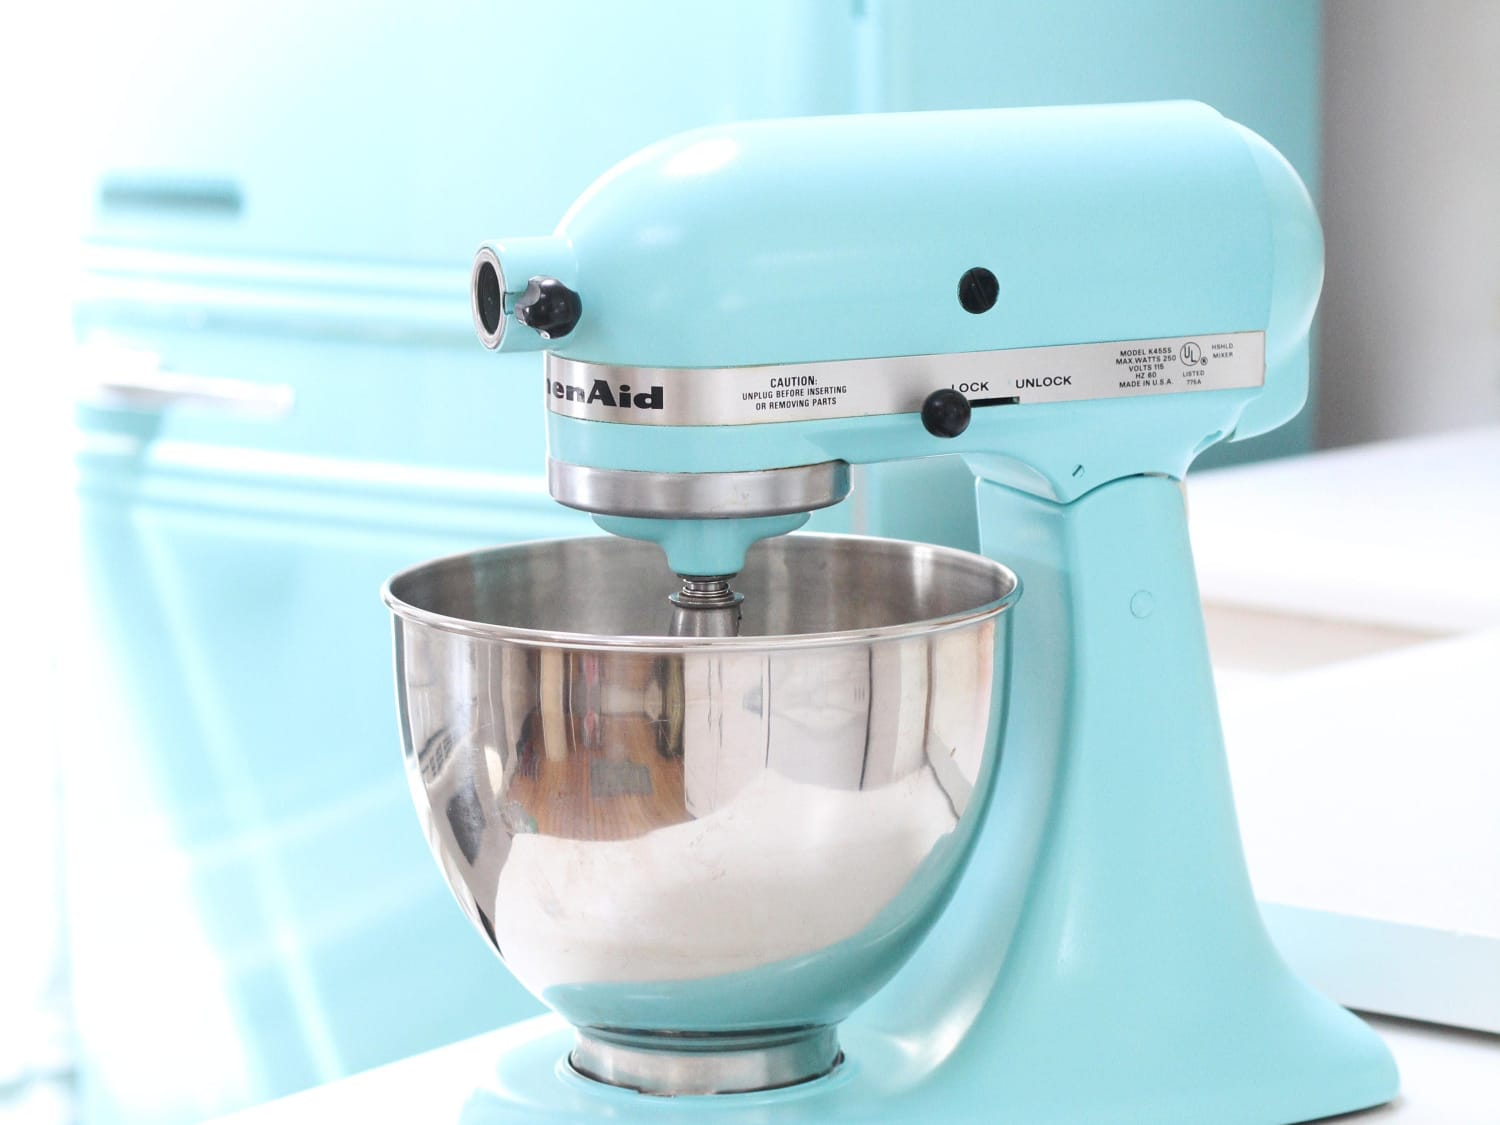 How To Paint a KitchenAid Mixer a New Color | Apartment Therapy